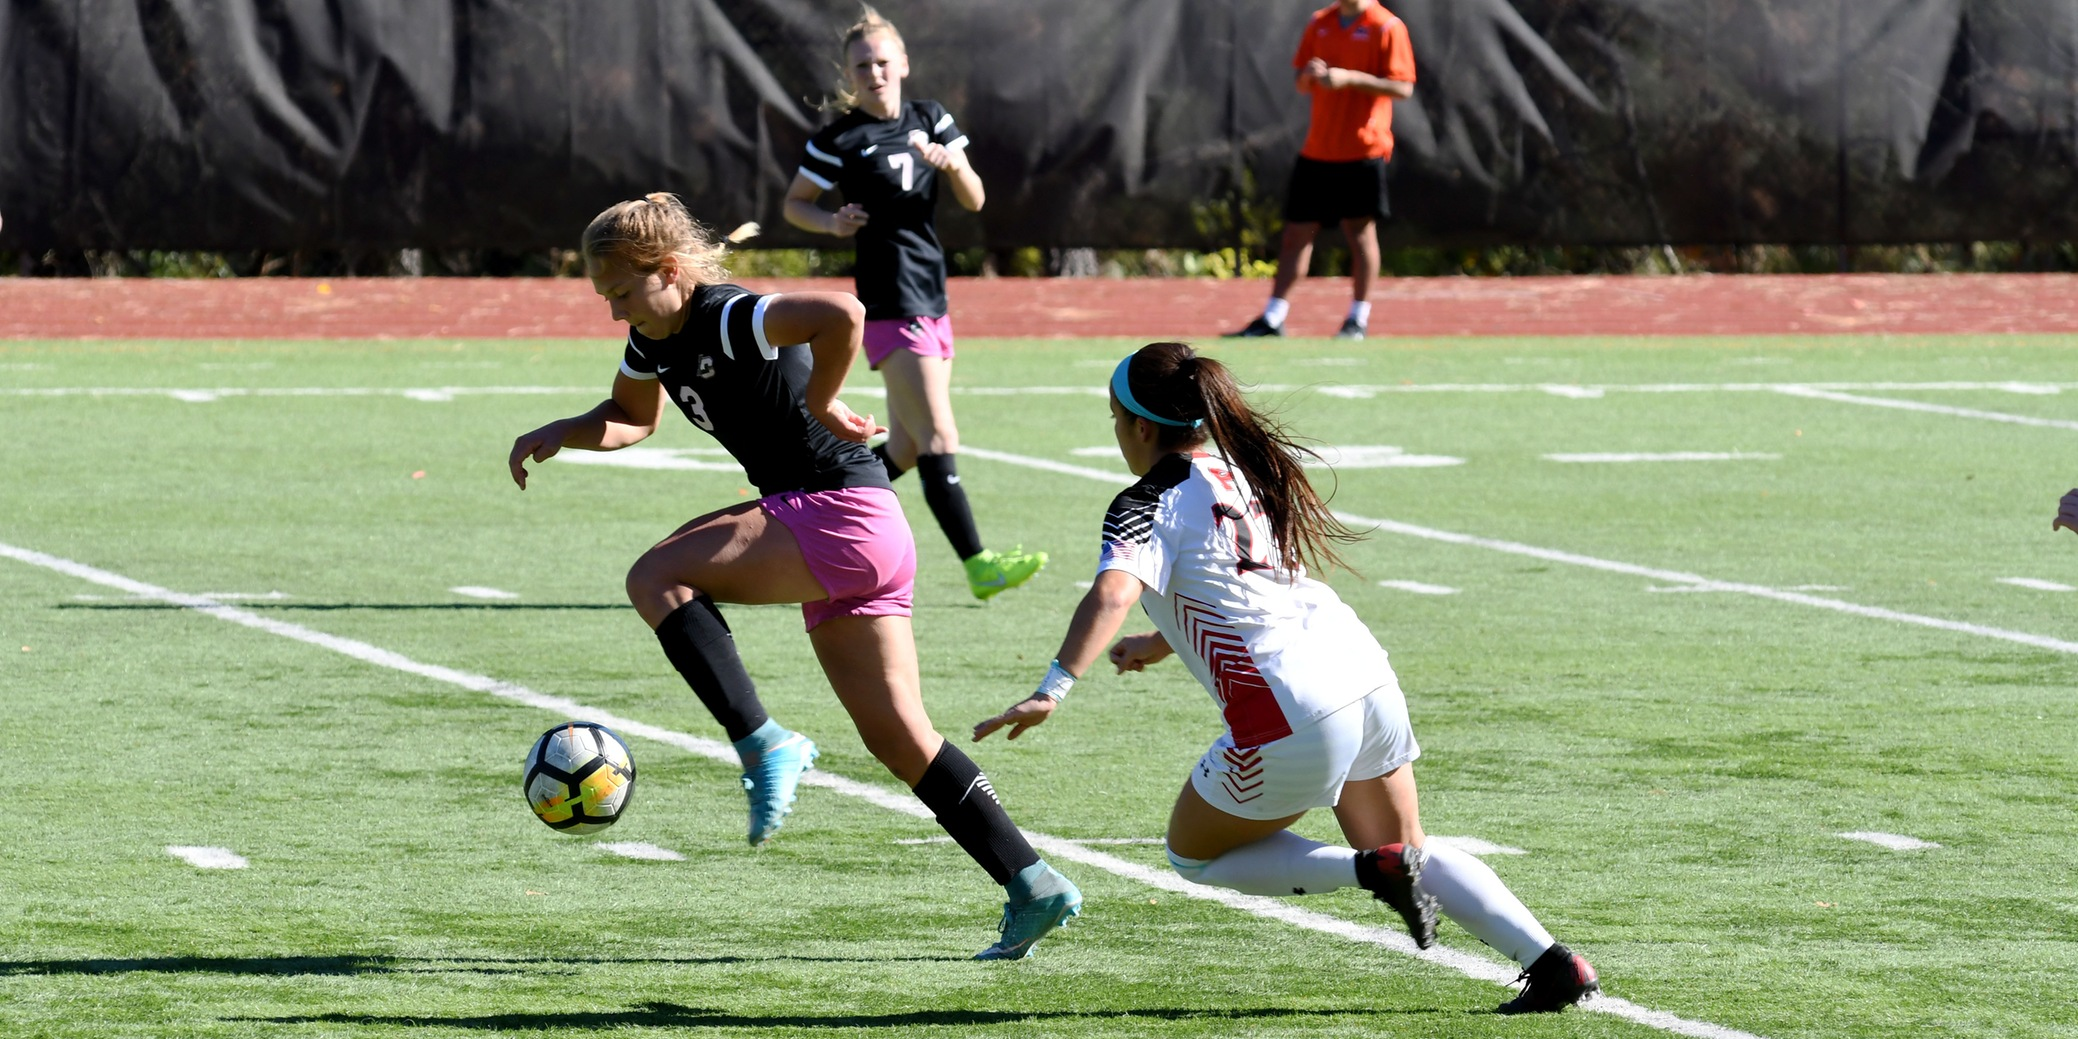 Pioneers allow three goals in road loss to Linfield